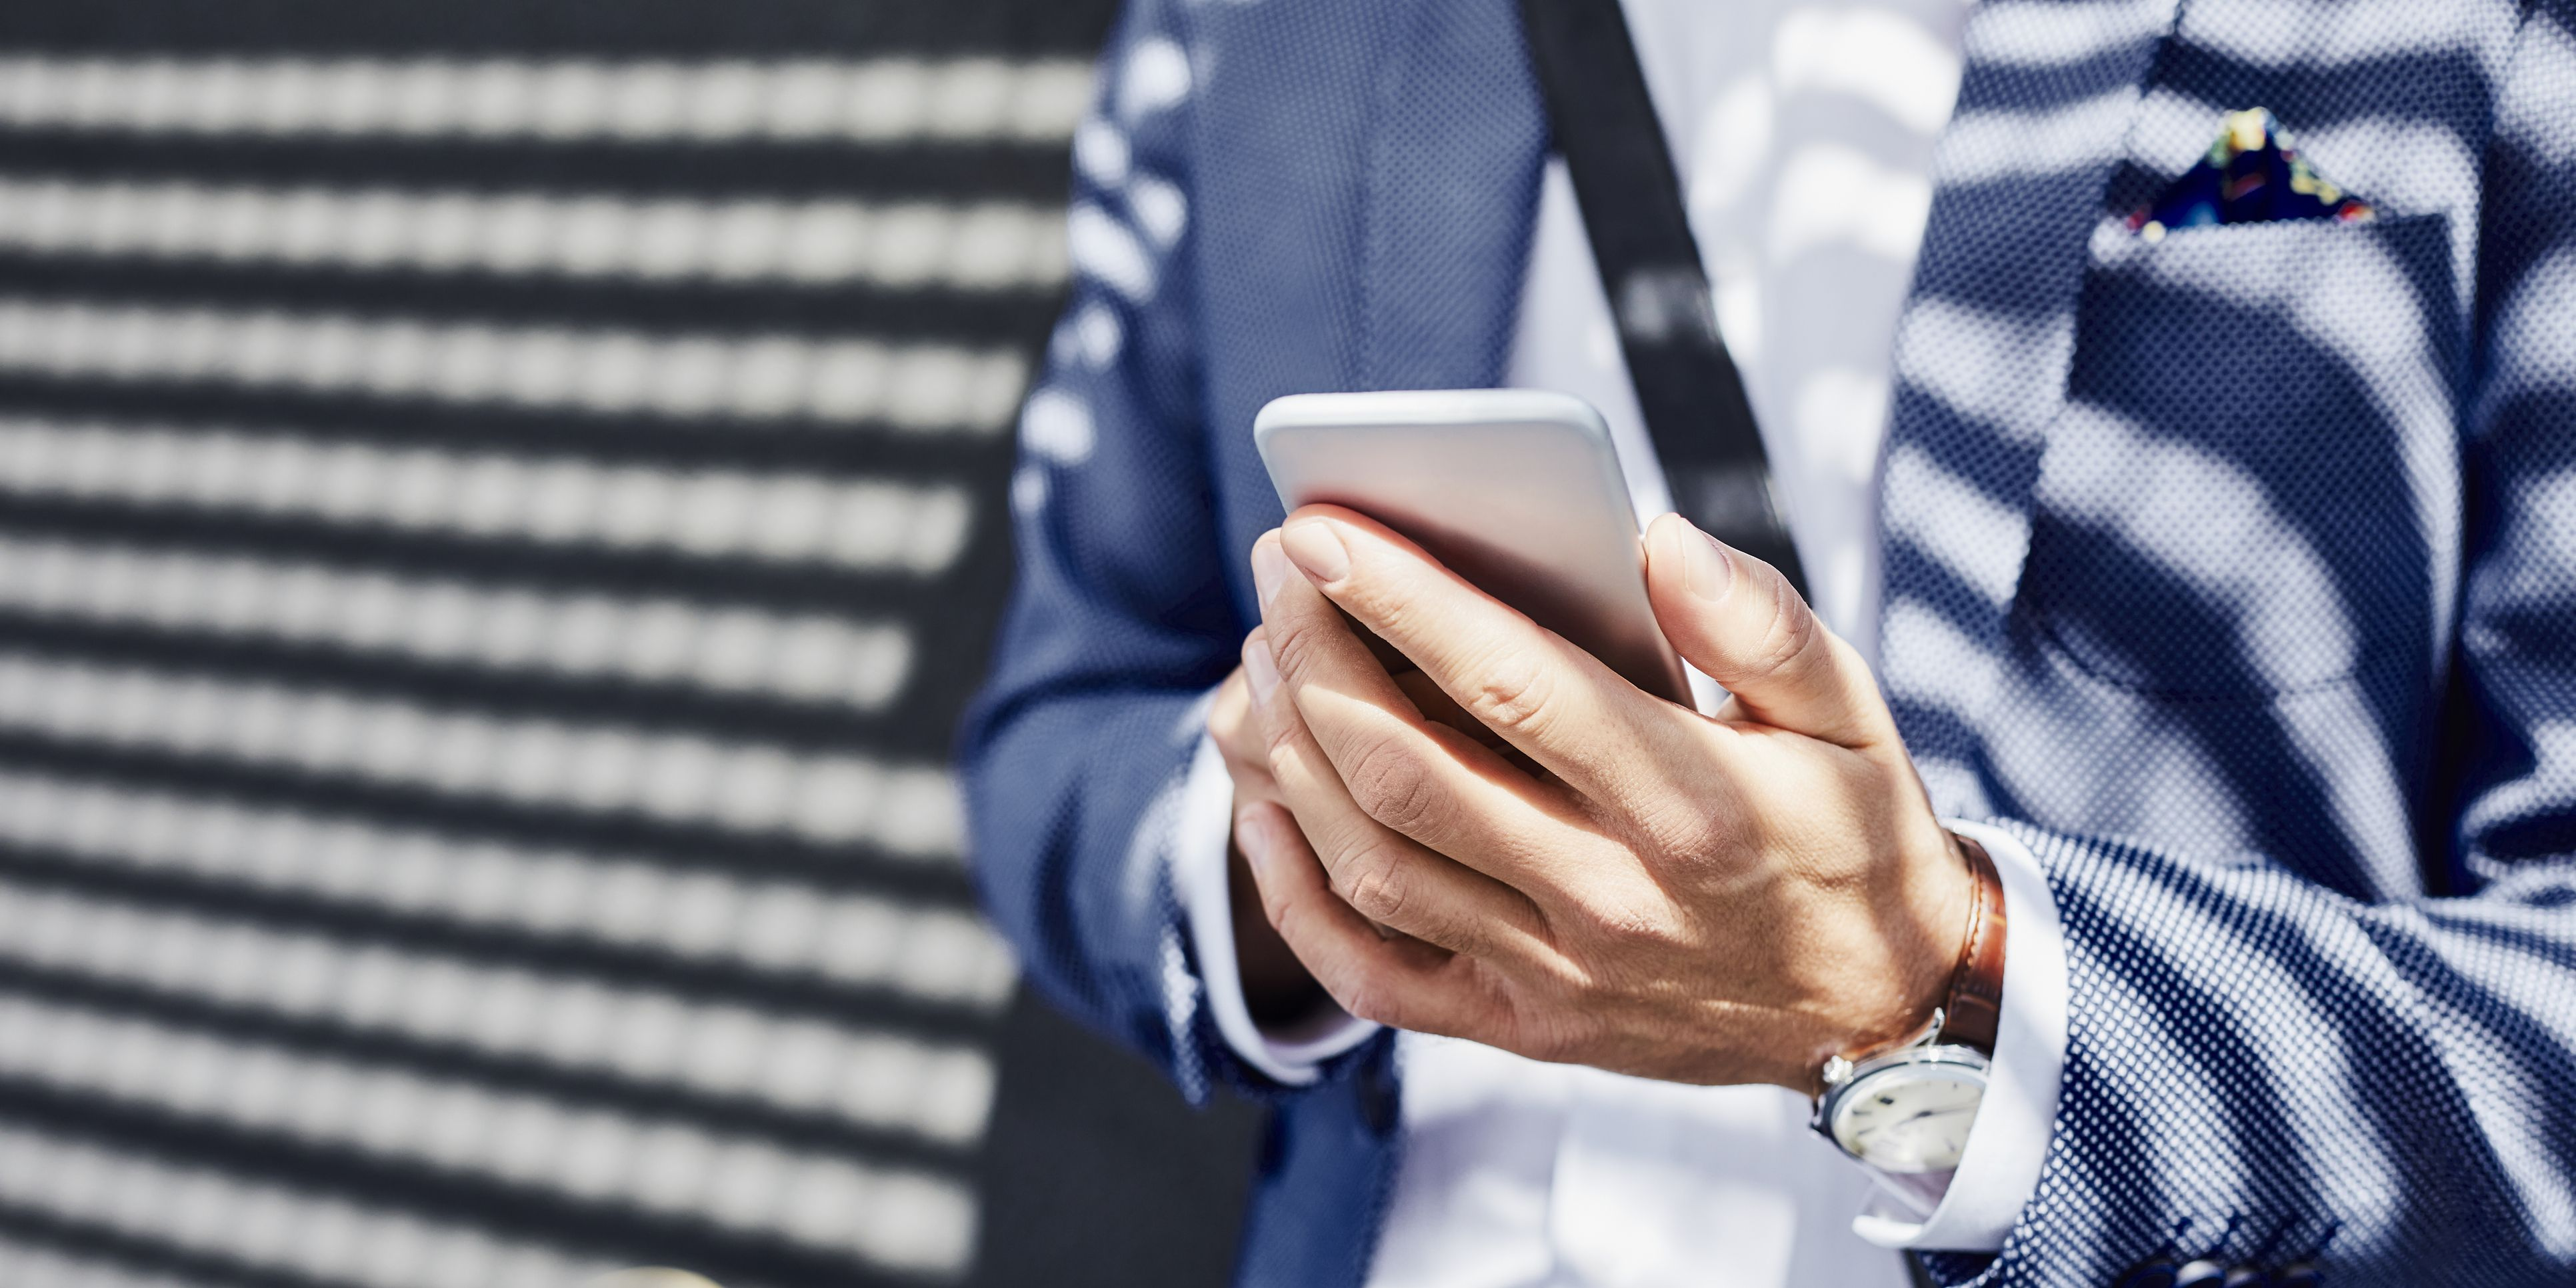 Close-up of businessman holding phone outdoors